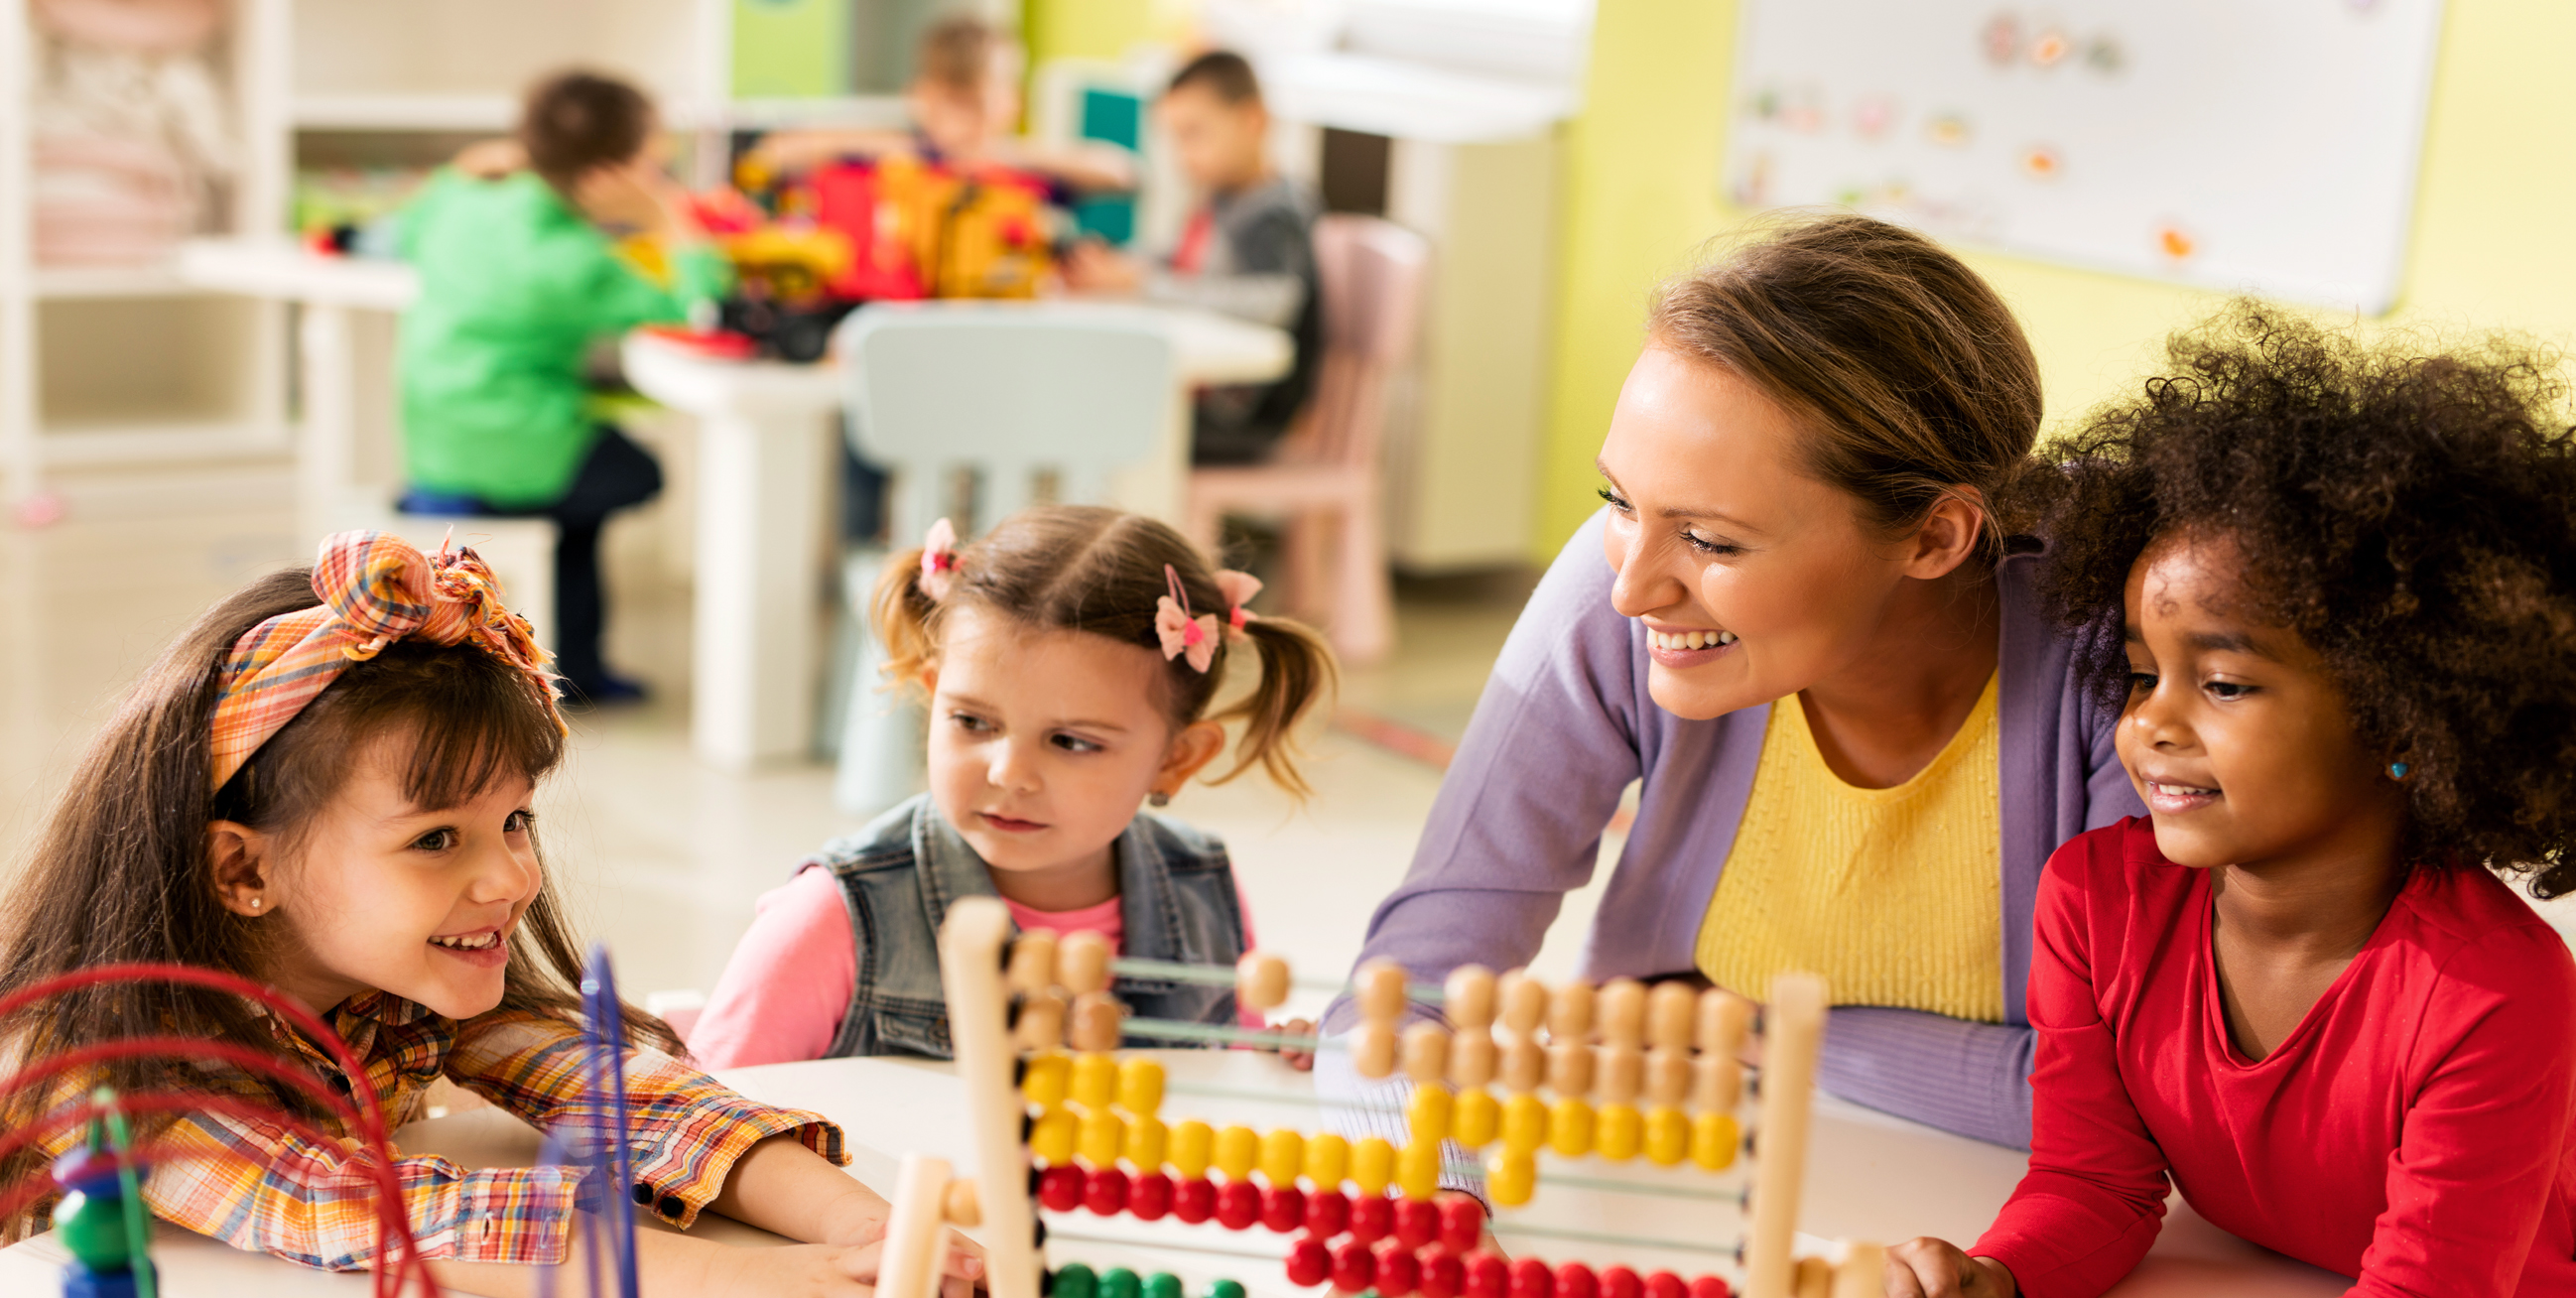 How To Find The Right Preschool For Quality Child Care